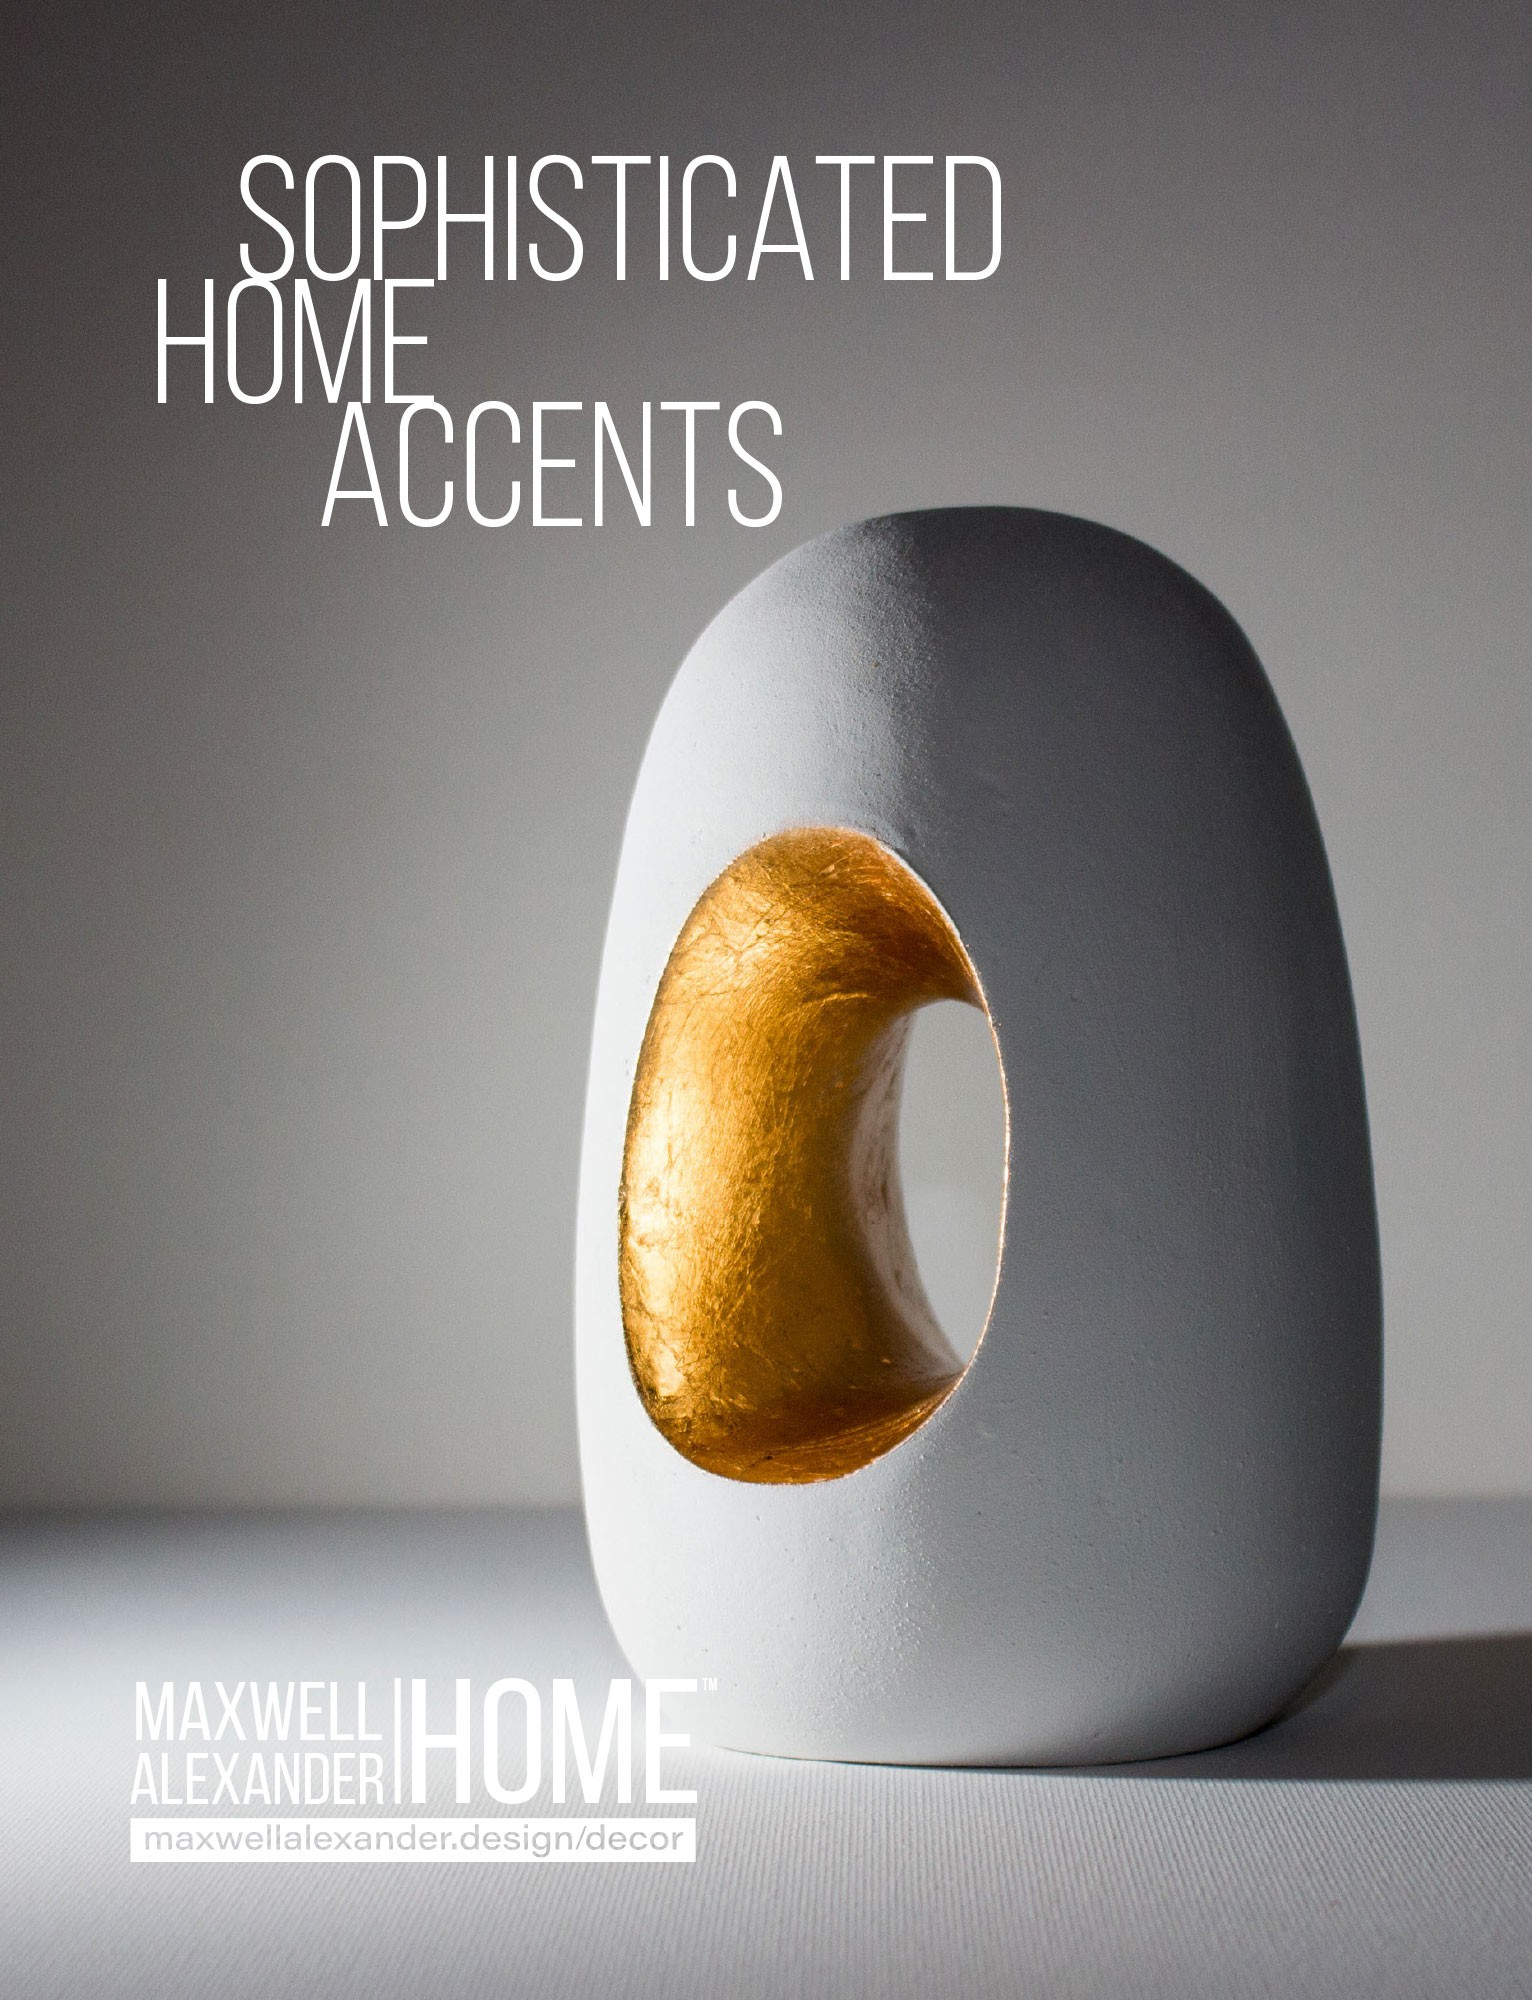 Maxwell Alexander | HOME™ Collection in the Duncan Avenue Shop